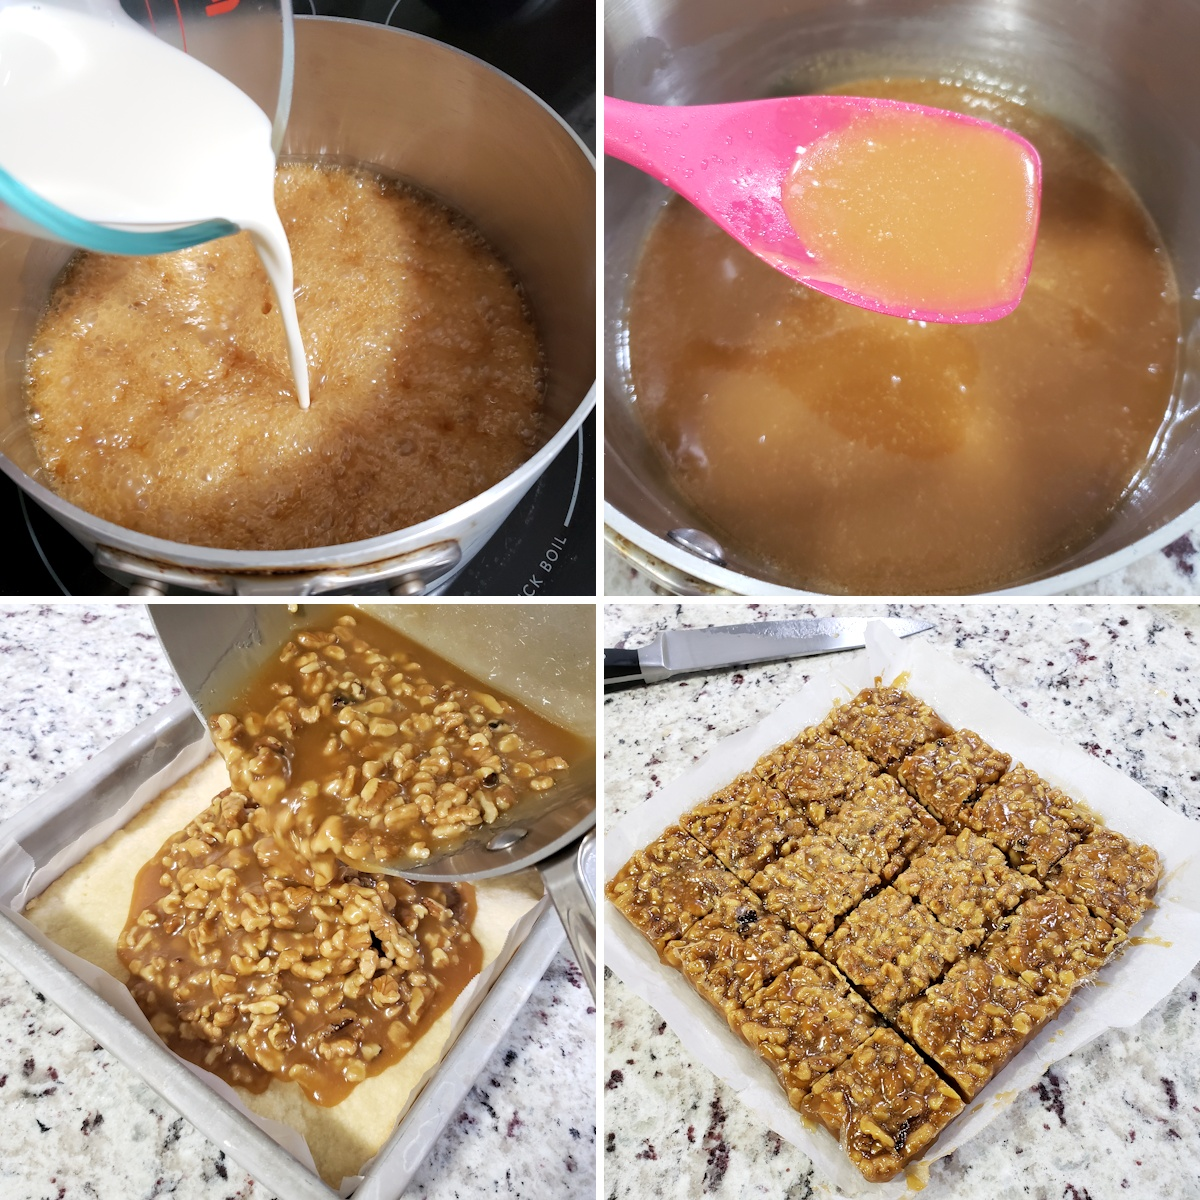 Cooking caramel in a pan and pouring into a baking pan.